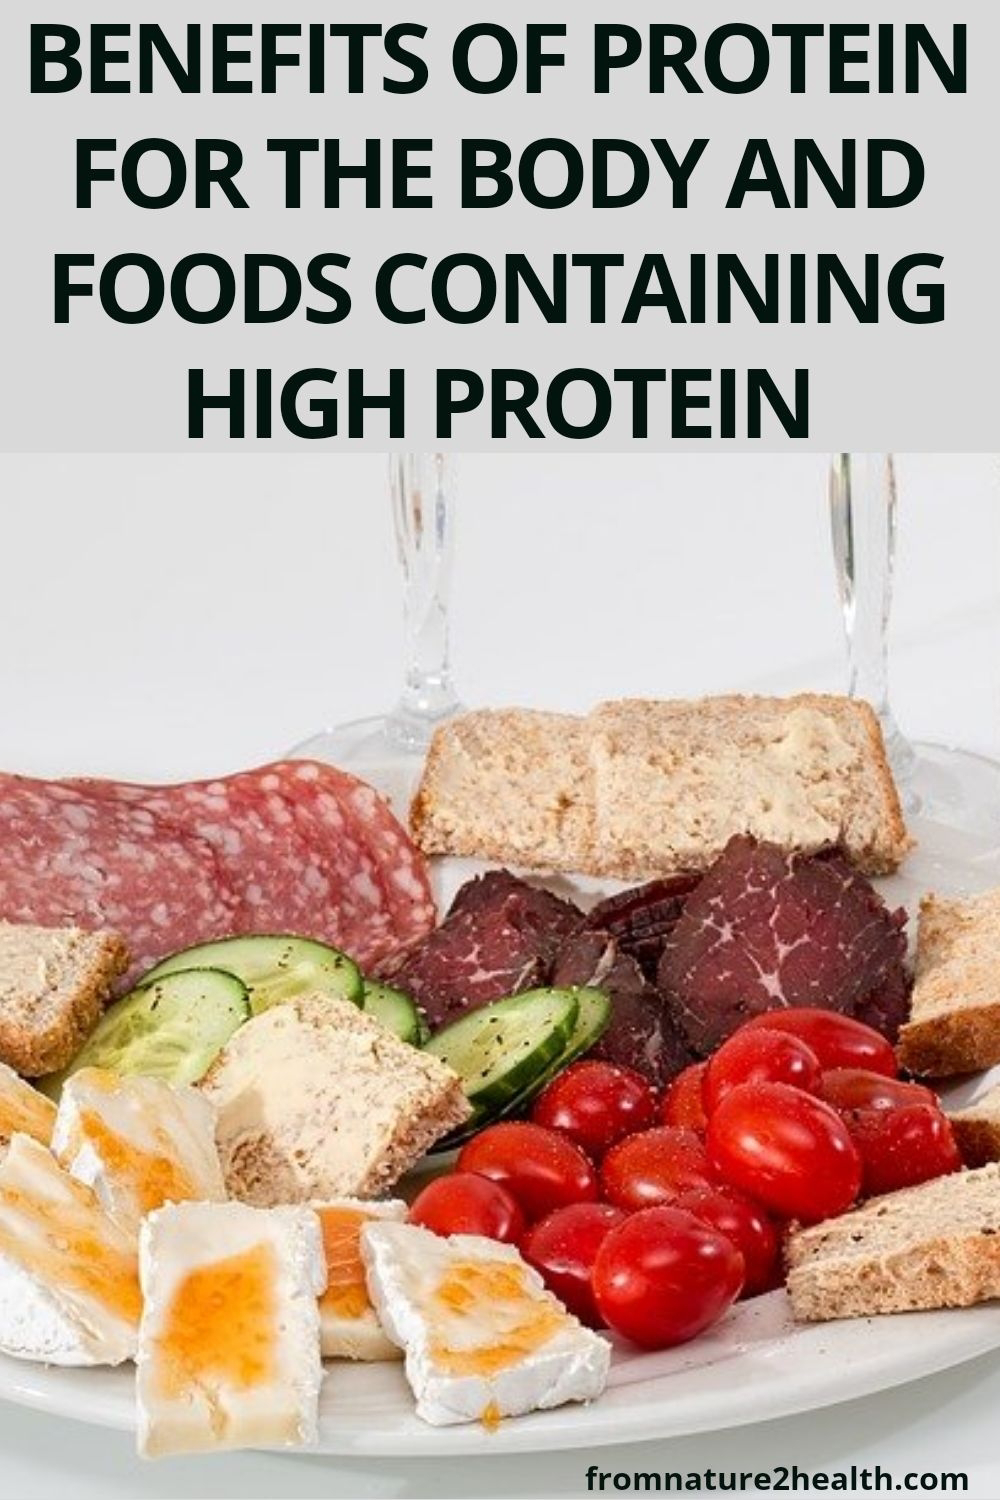 Benefits of Protein for the Body and Foods Containing High Protein